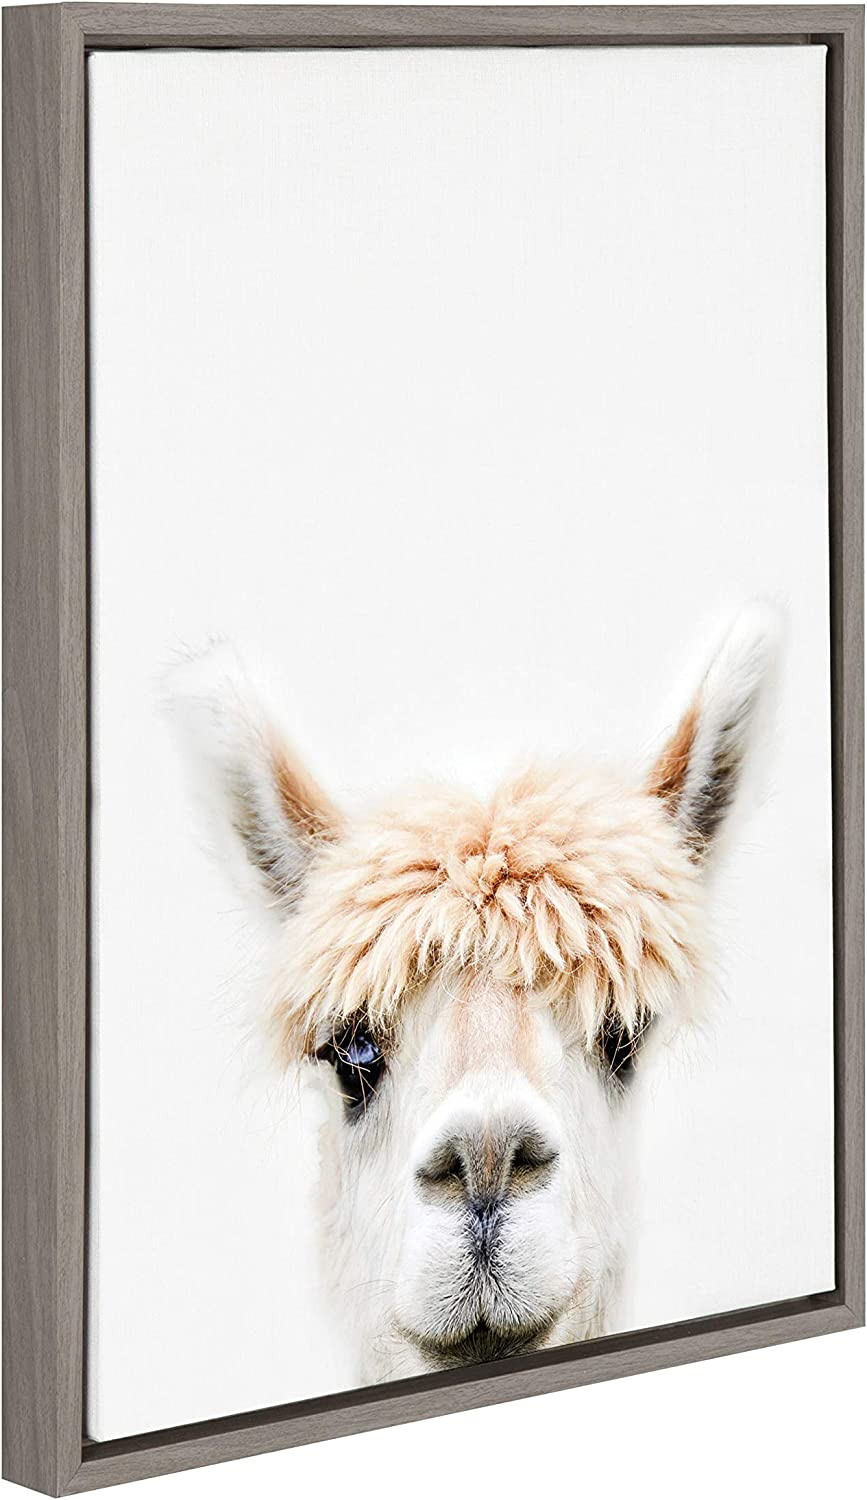 Amazon Com Kate And Laurel Sylvie Alpaca Bangs Animal Print Portrait Framed Canvas Wall Art By Amy Peterson 18x24 Gray Posters Prints